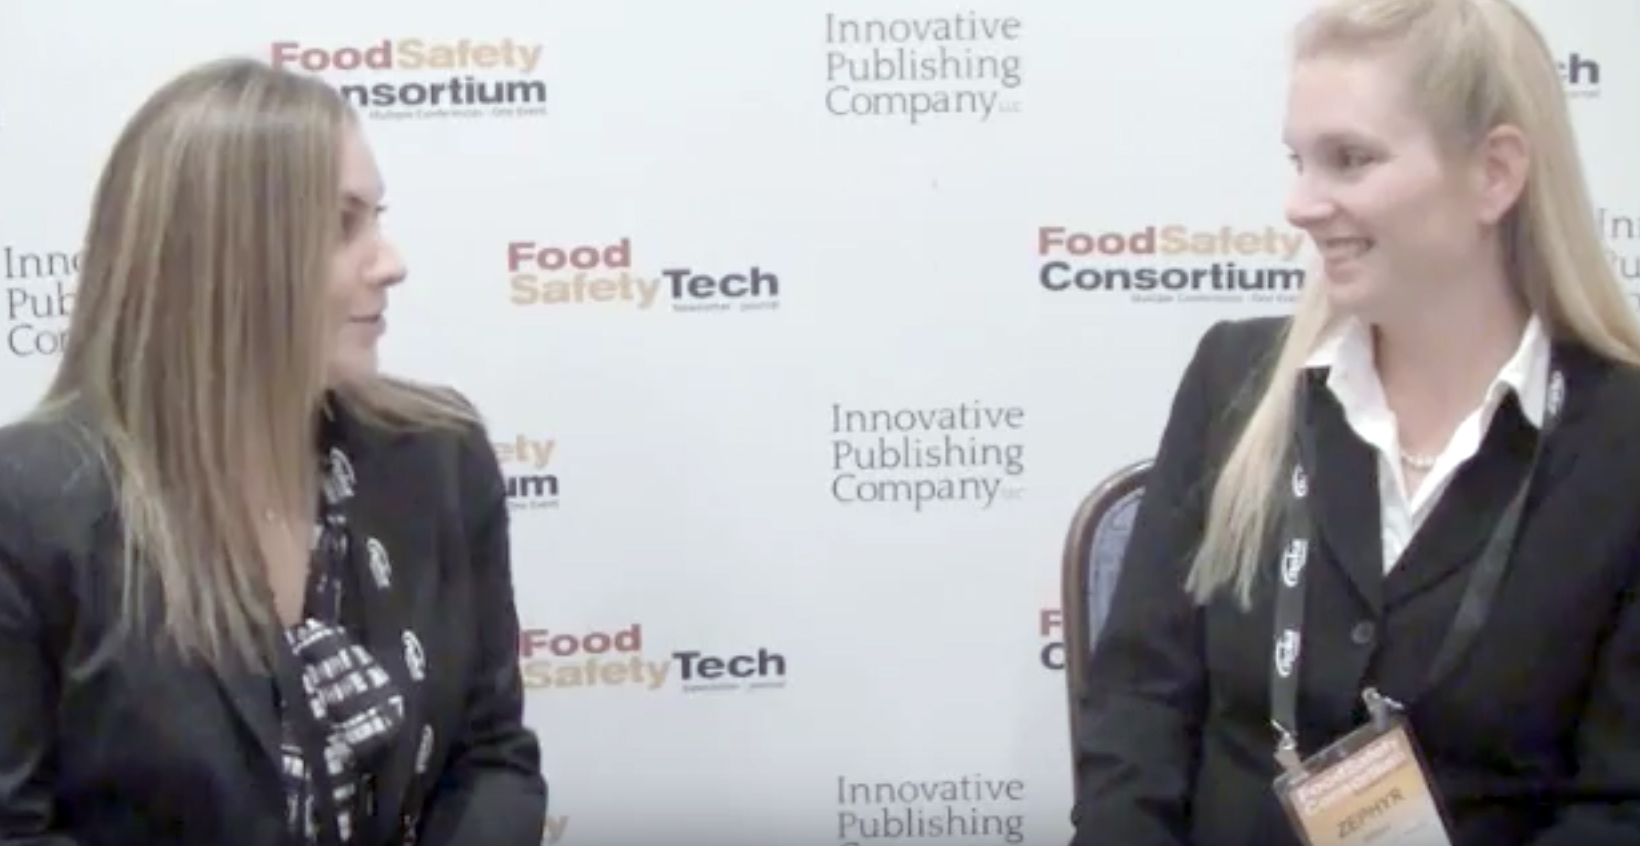 Maria Fontanazza, Zephyr Wilson, Food Safety Consortium